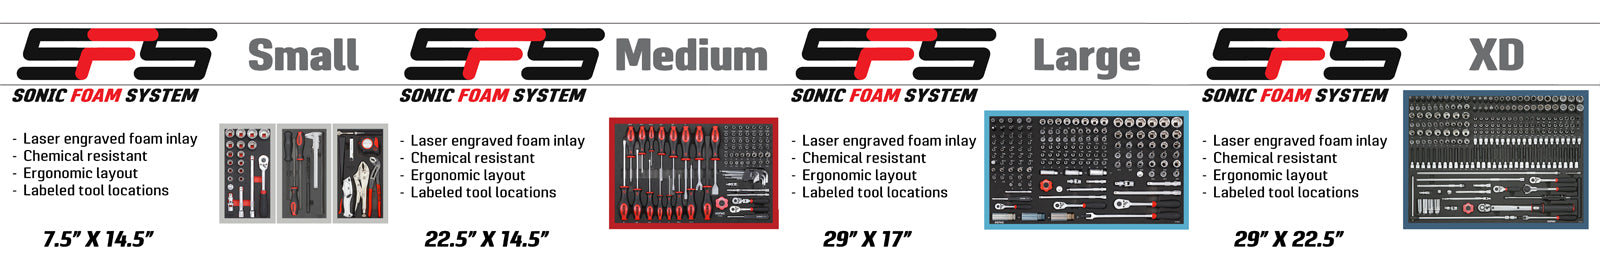 sonic foam systems tools